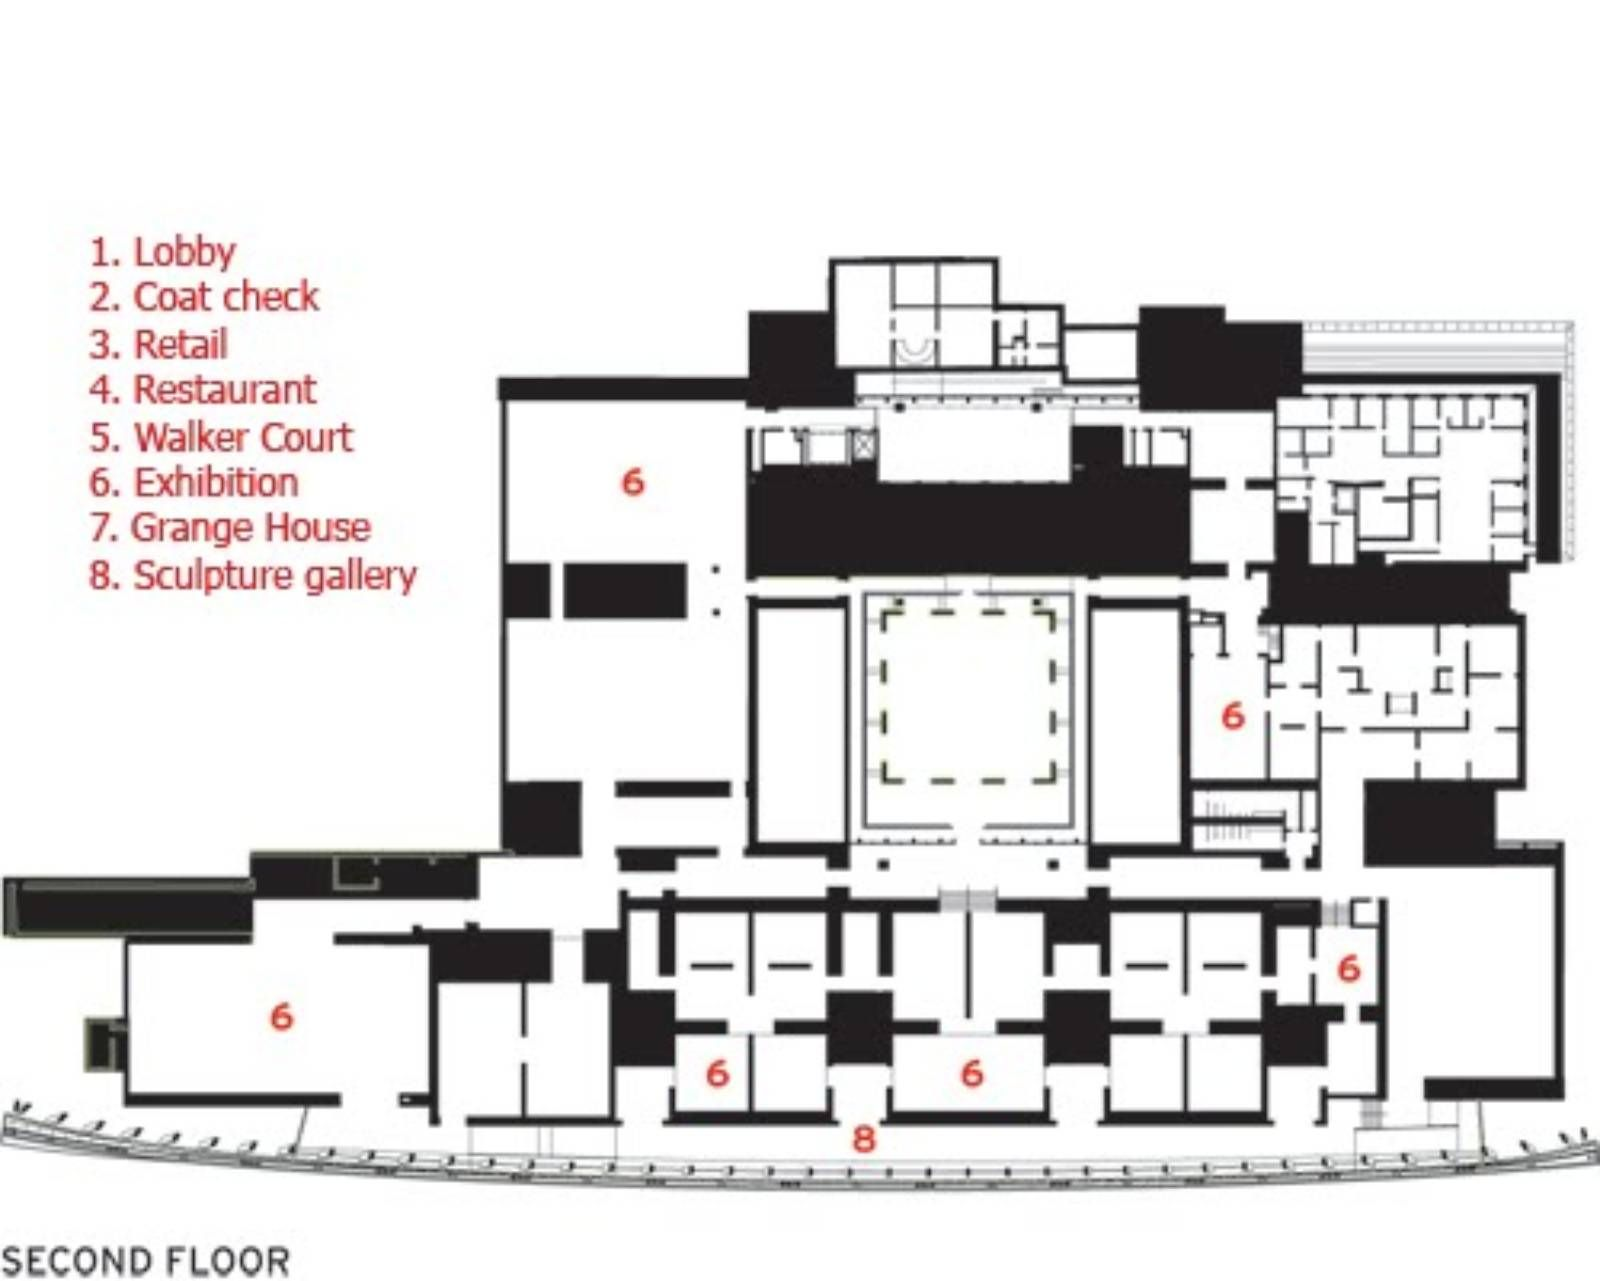 Ad classic norton house frank gehry archdaily - Second Floor Plan Art Gallery Of Ontario Ago Frank Gehry